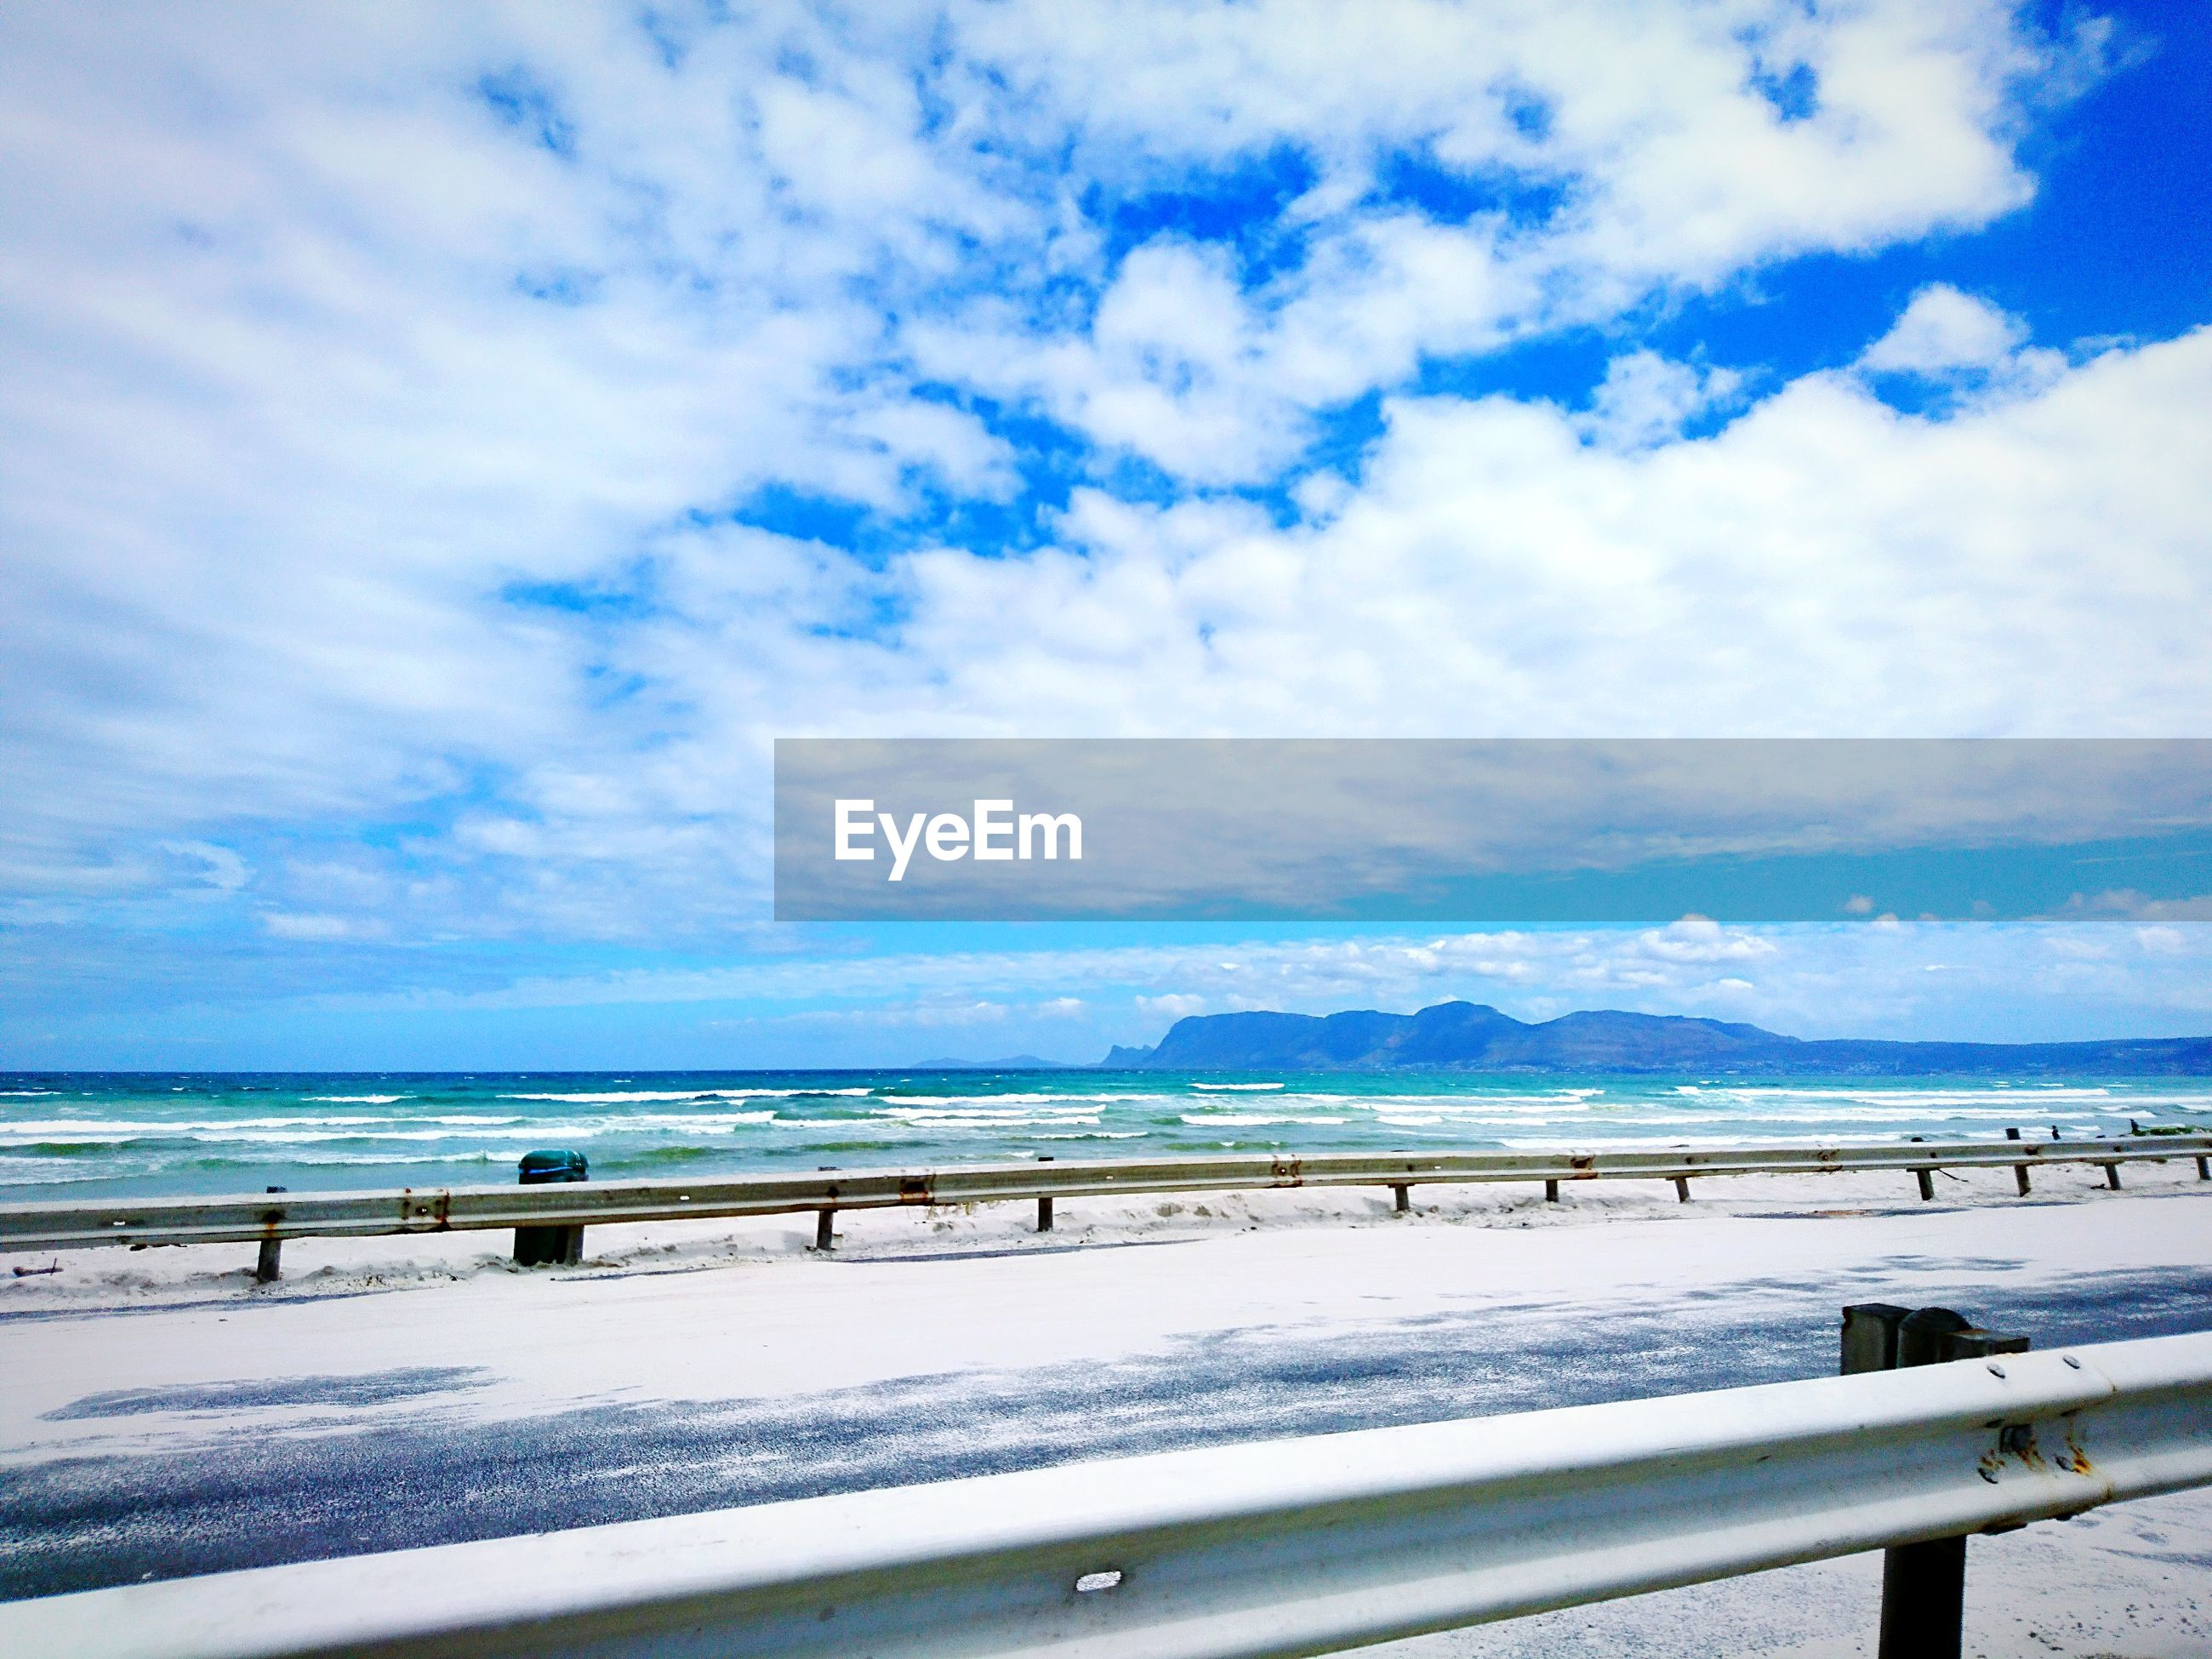 sea, sky, scenics, water, tranquility, cloud - sky, day, tranquil scene, blue, nature, beauty in nature, railing, outdoors, no people, horizon over water, beach